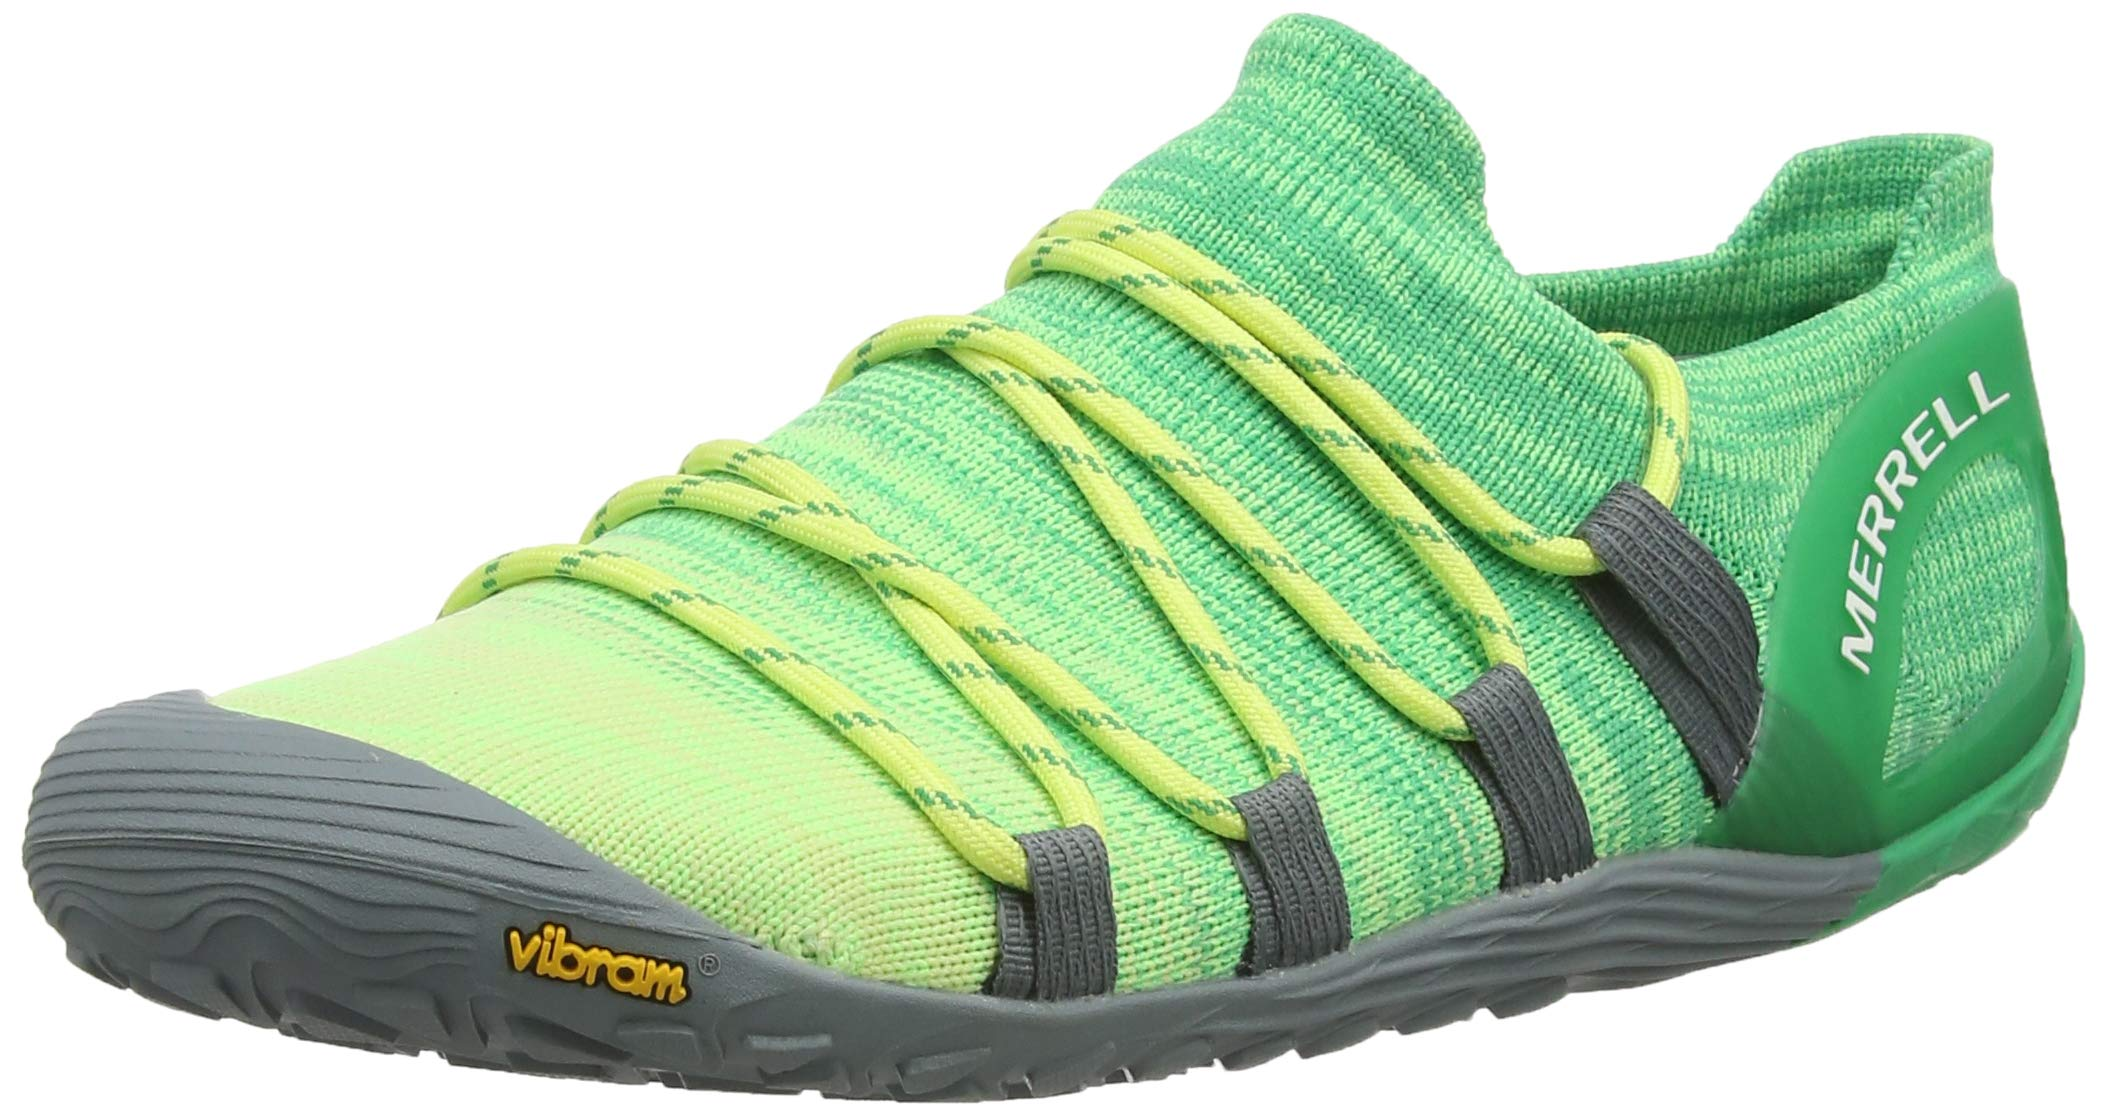 Merrell Women's Vapor Glove 4 3D Sunny Lime/Beetle 8 M US by Merrell